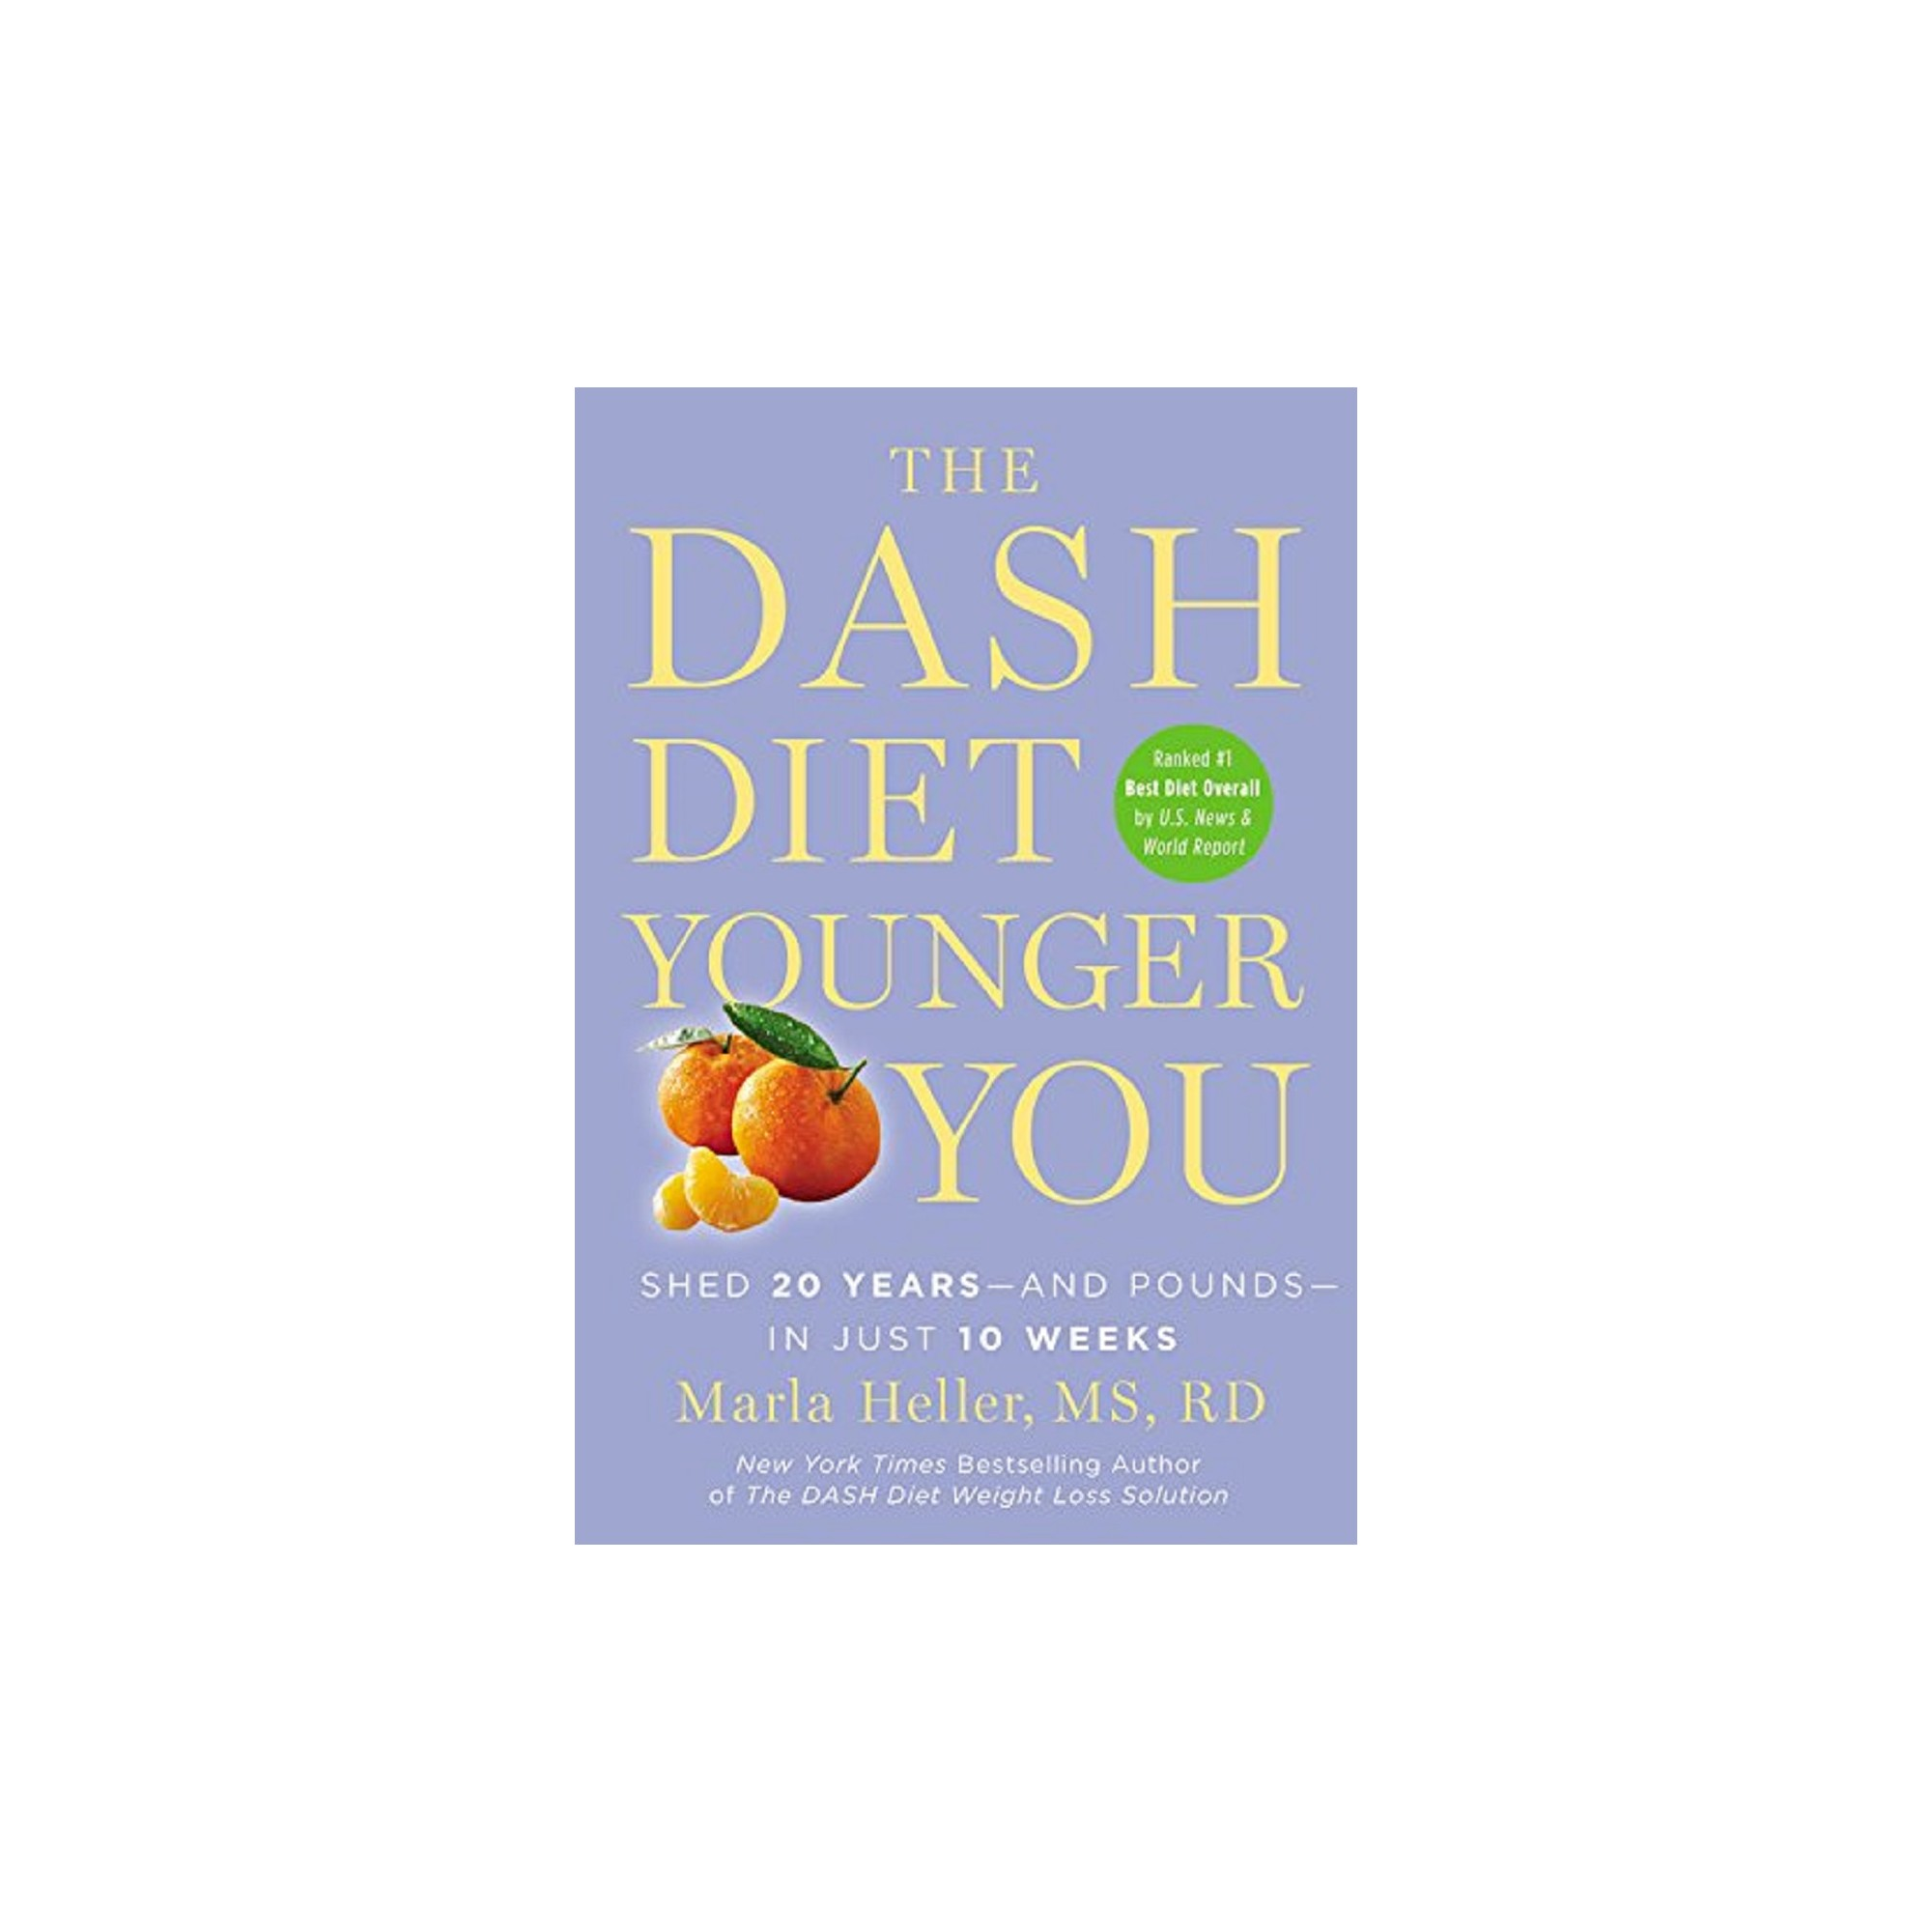 Dash Diet Younger You Shed 20 Years and Pounds In